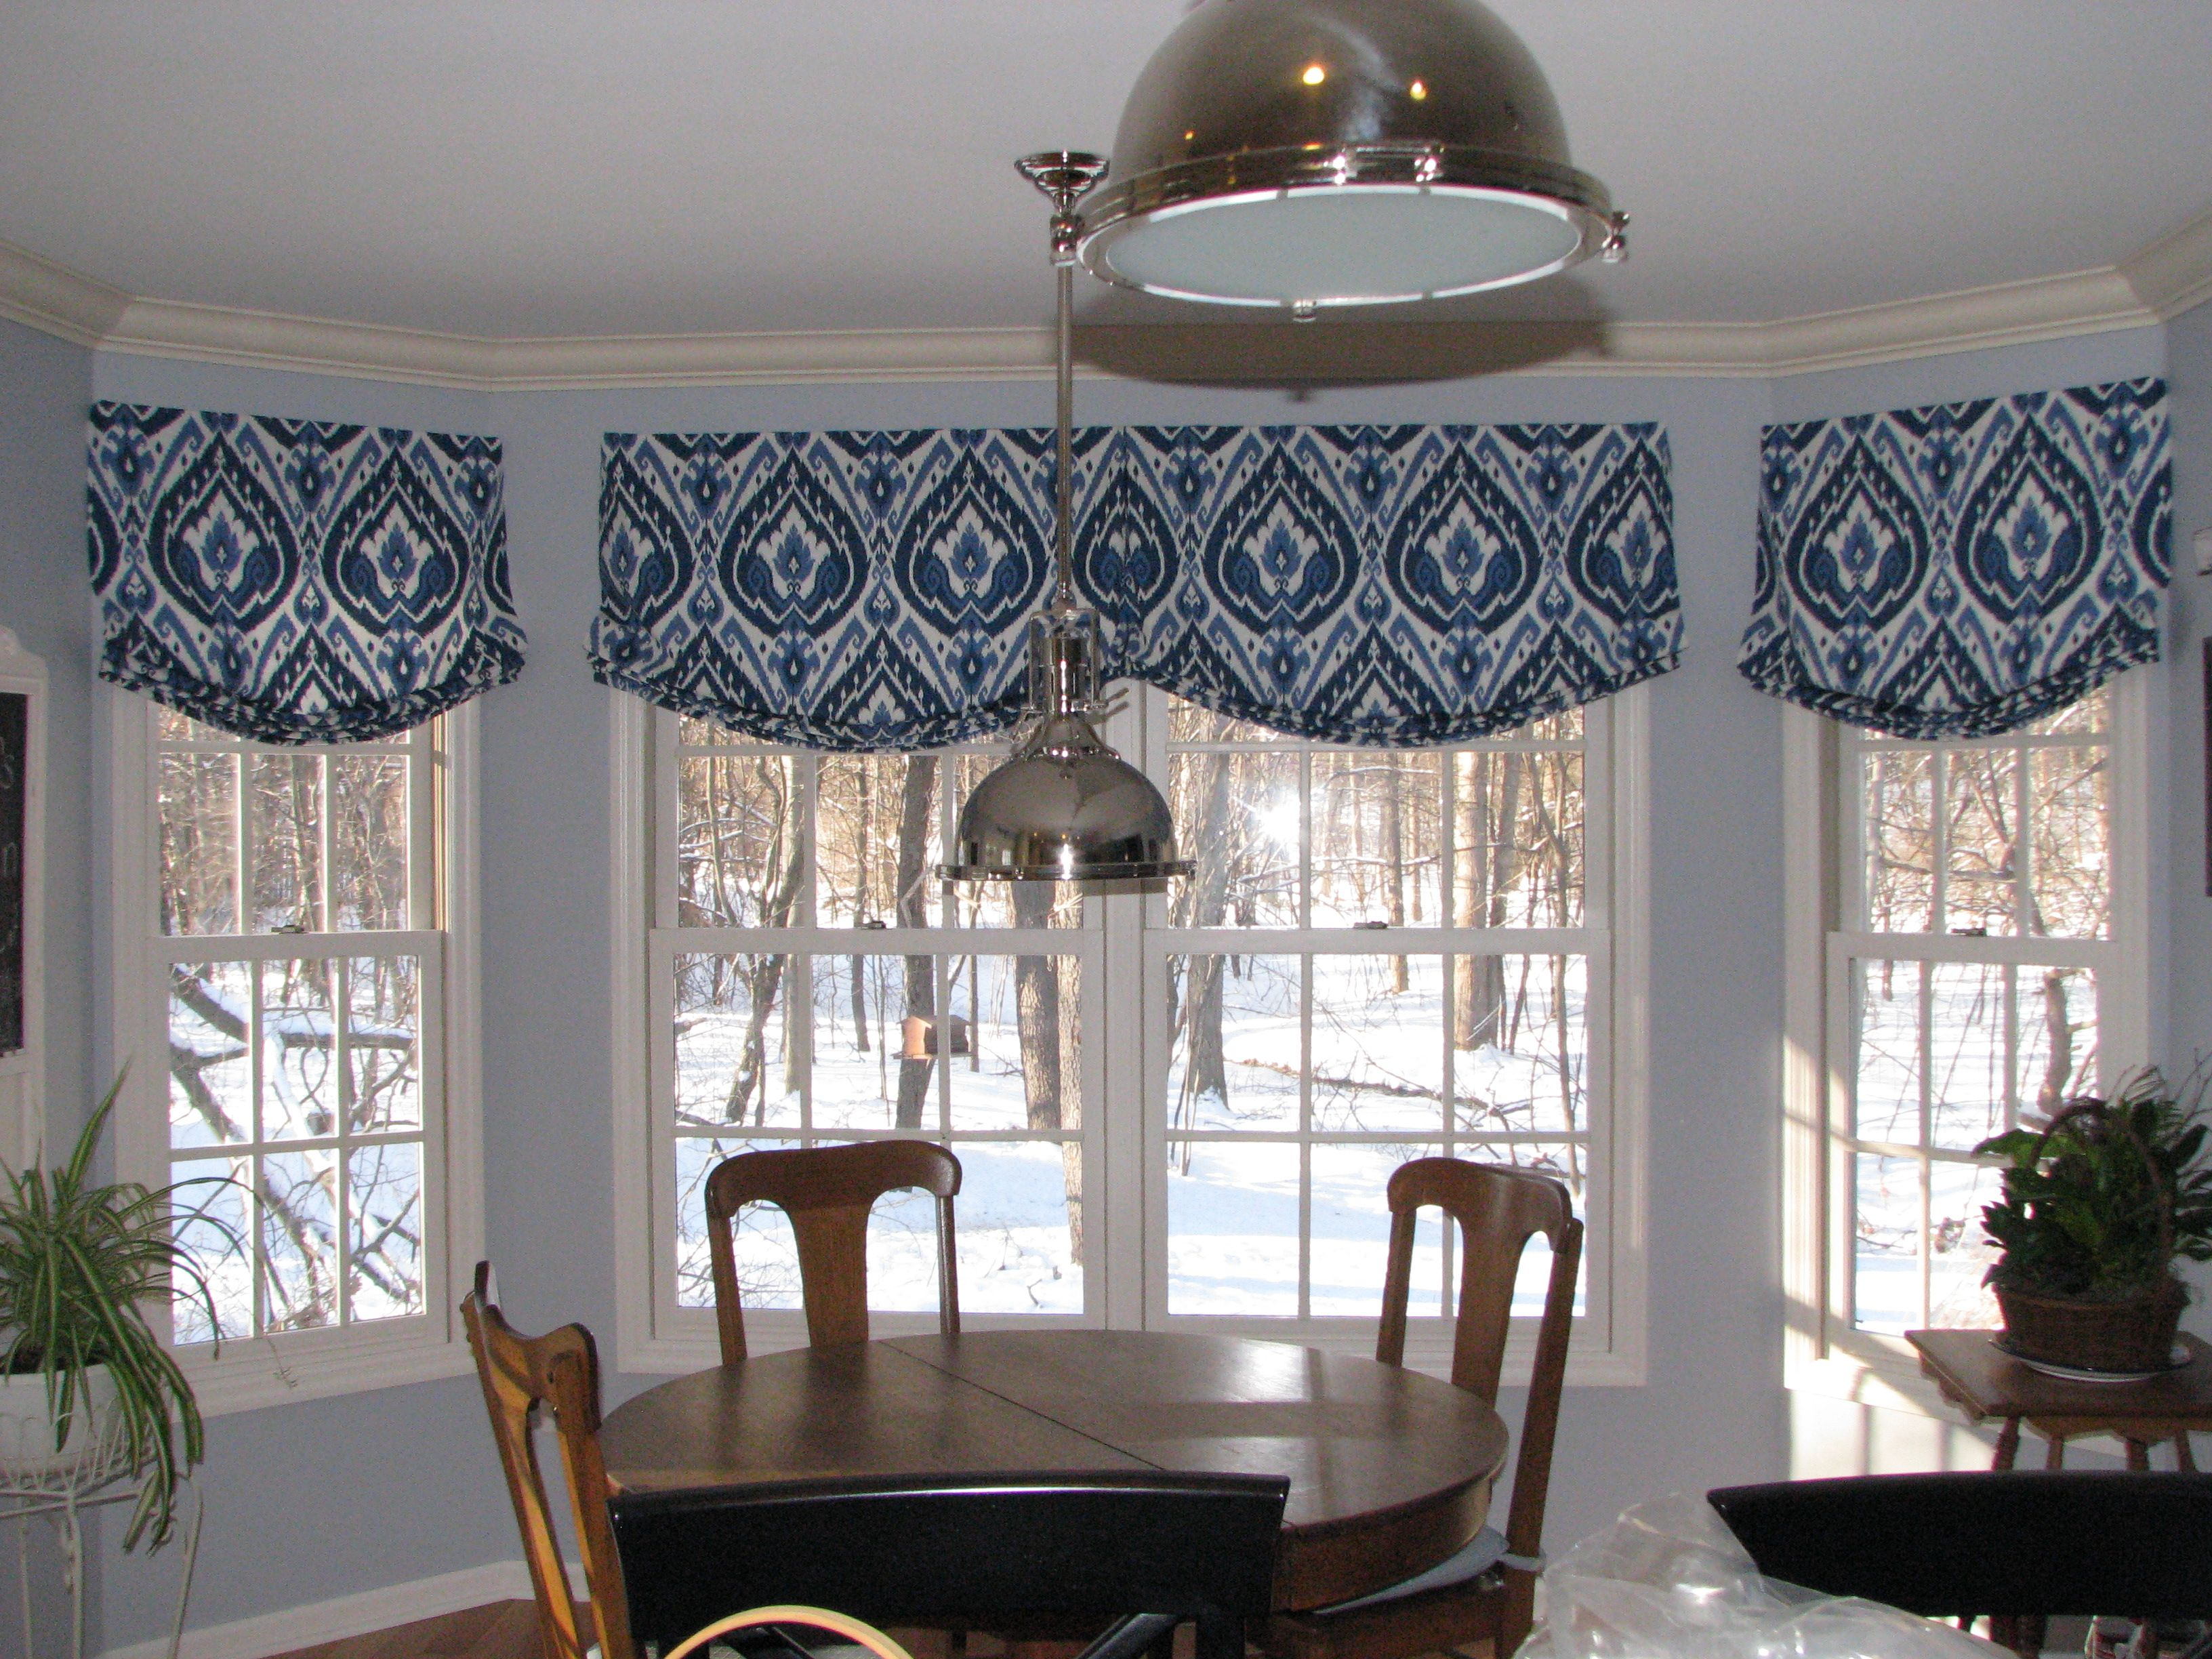 relaxed roman shade valance in ultra marine ikat pattern creates a relaxed roman shade valance in ultra marine ikat pattern creates a stunning look in a kitchen